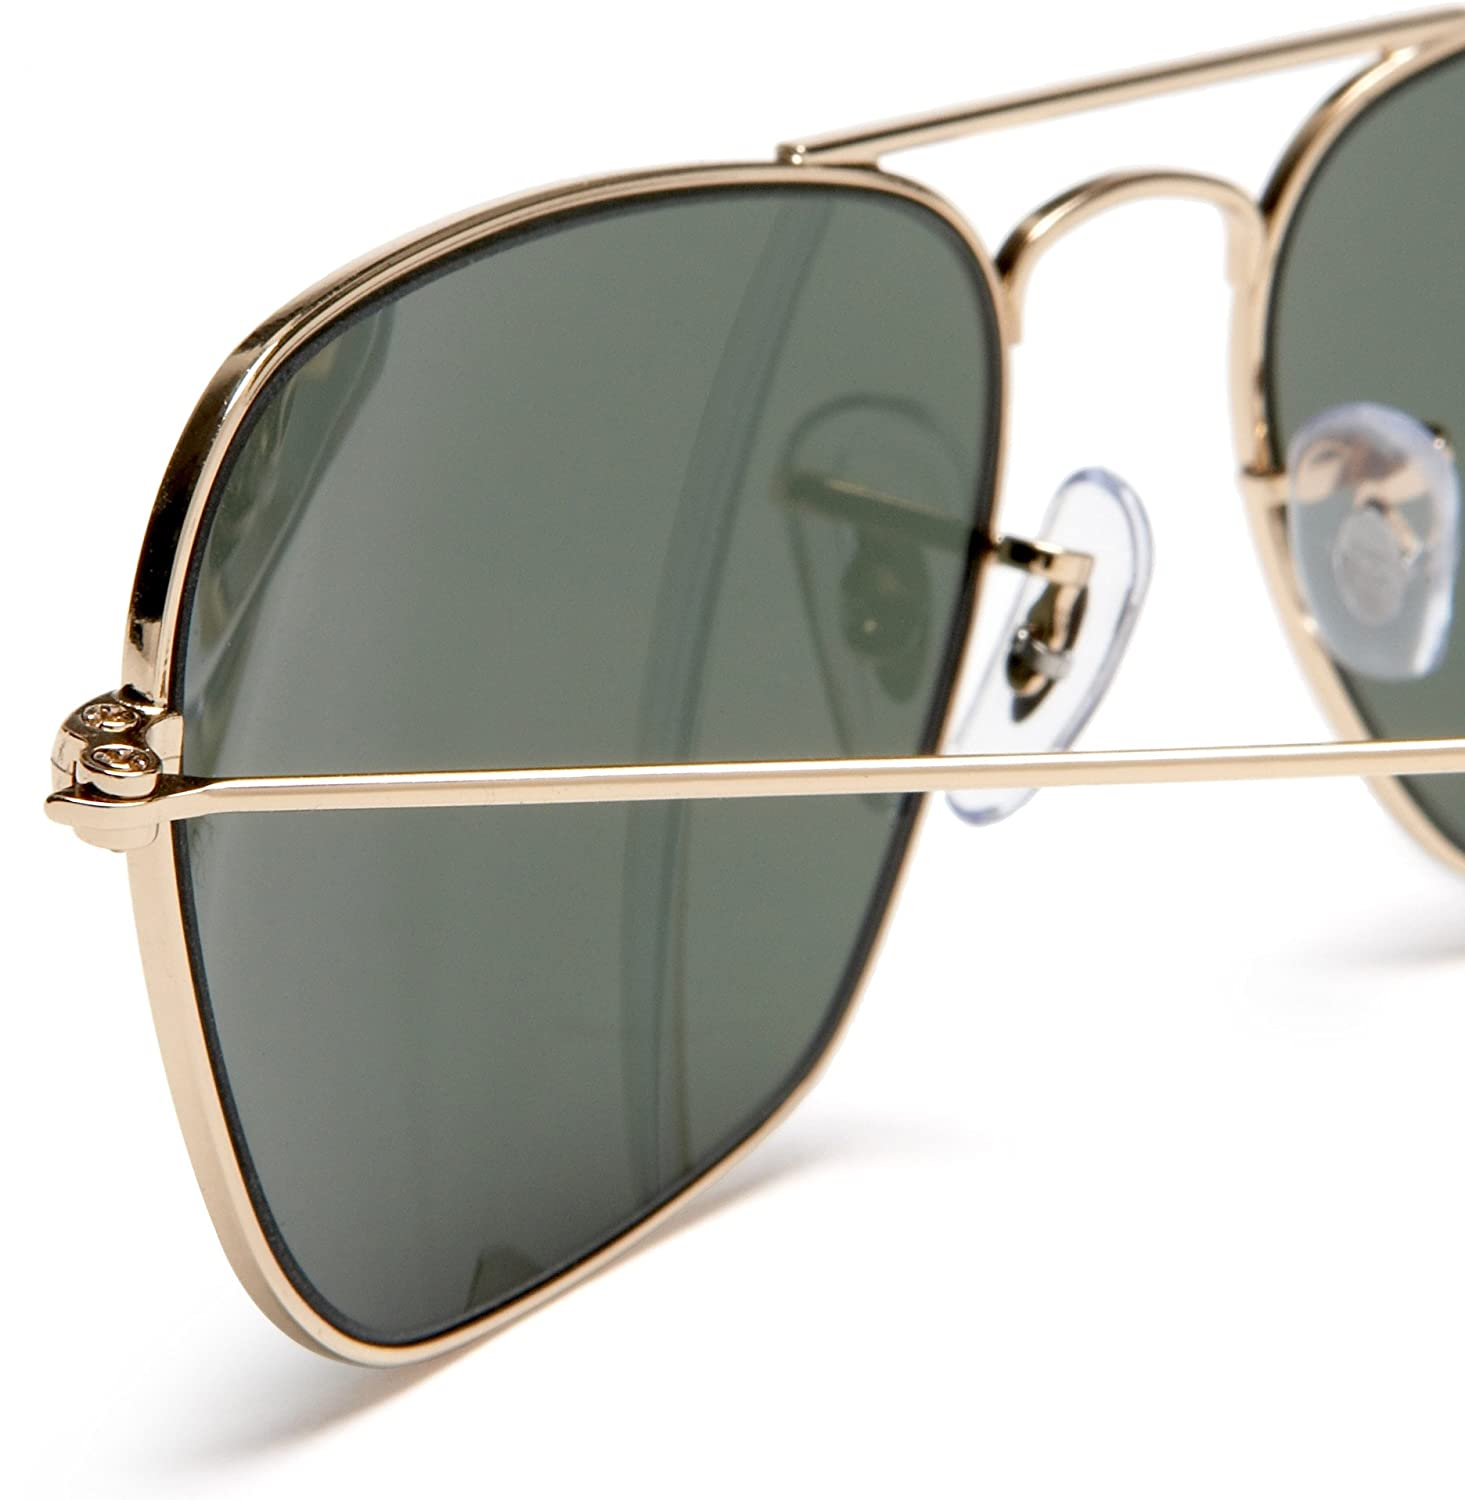 Amazon.com: Ray-Ban CARAVAN - ARISTA Frame CRYSTAL GREEN Lenses 58mm Non-Polarized: Ray-Ban: Clothing